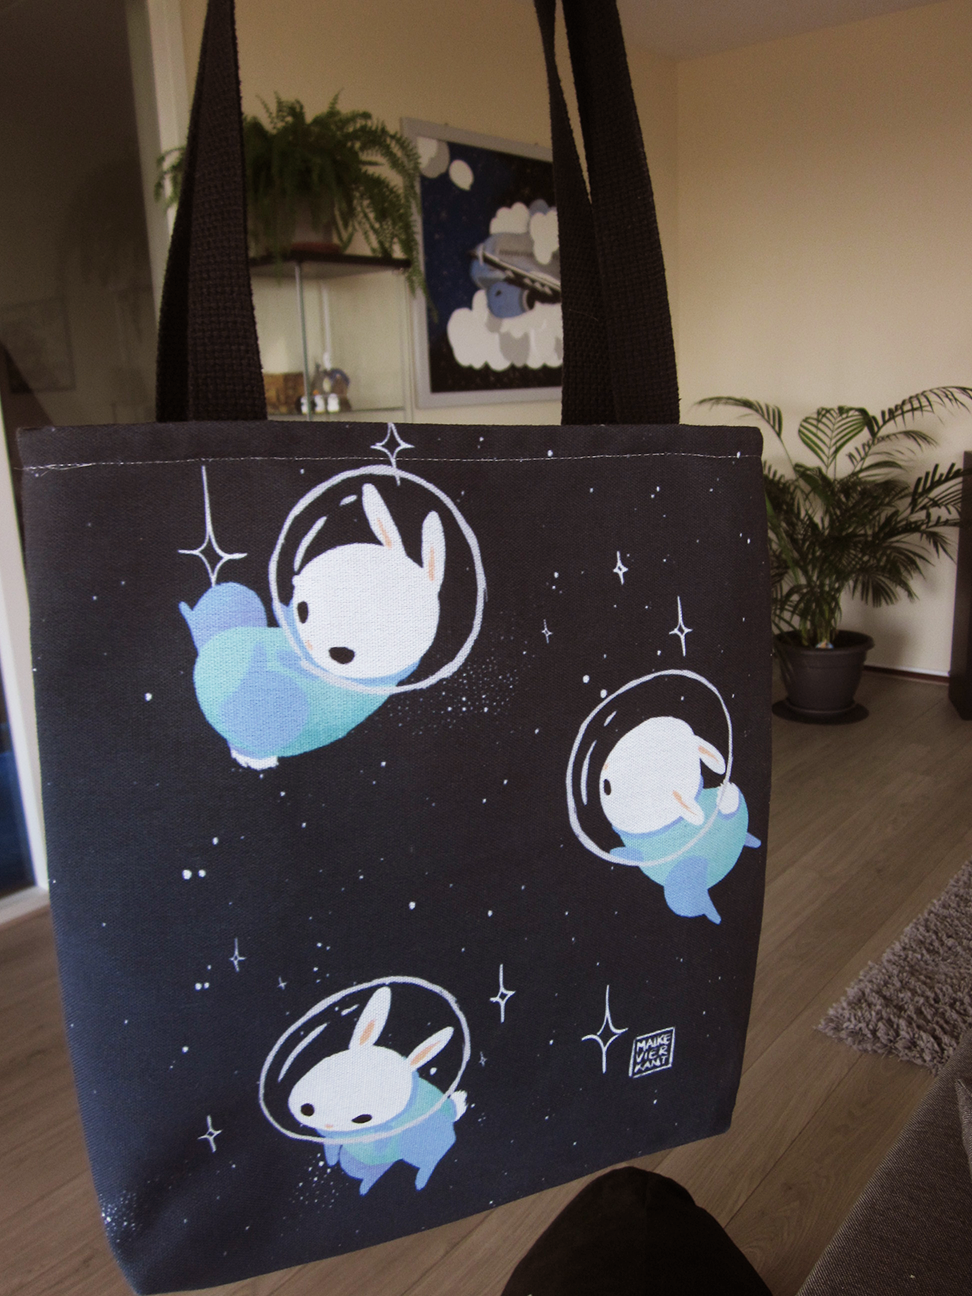 "13"" x 13"" tote bag as available on   Society6"